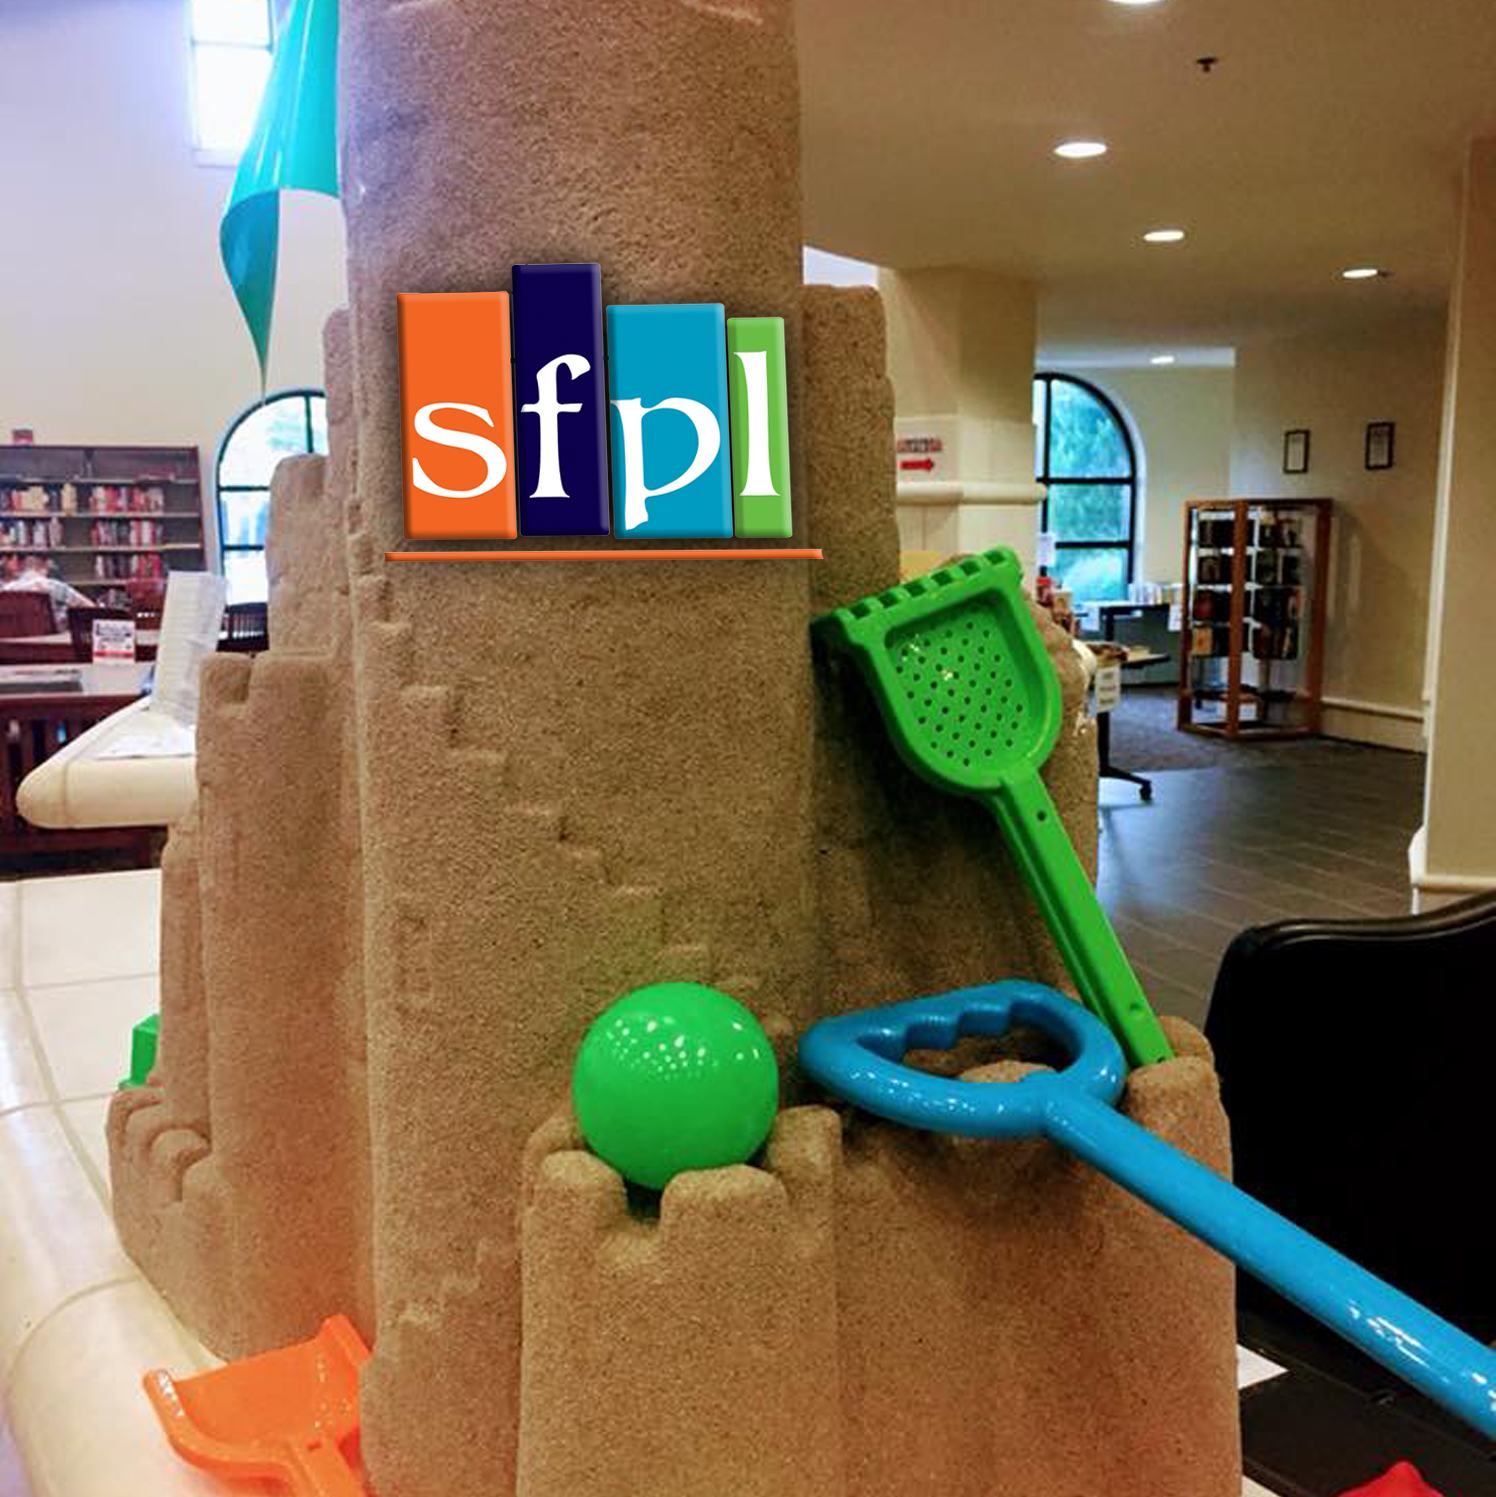 SFPL sandcastle on counter at front desk